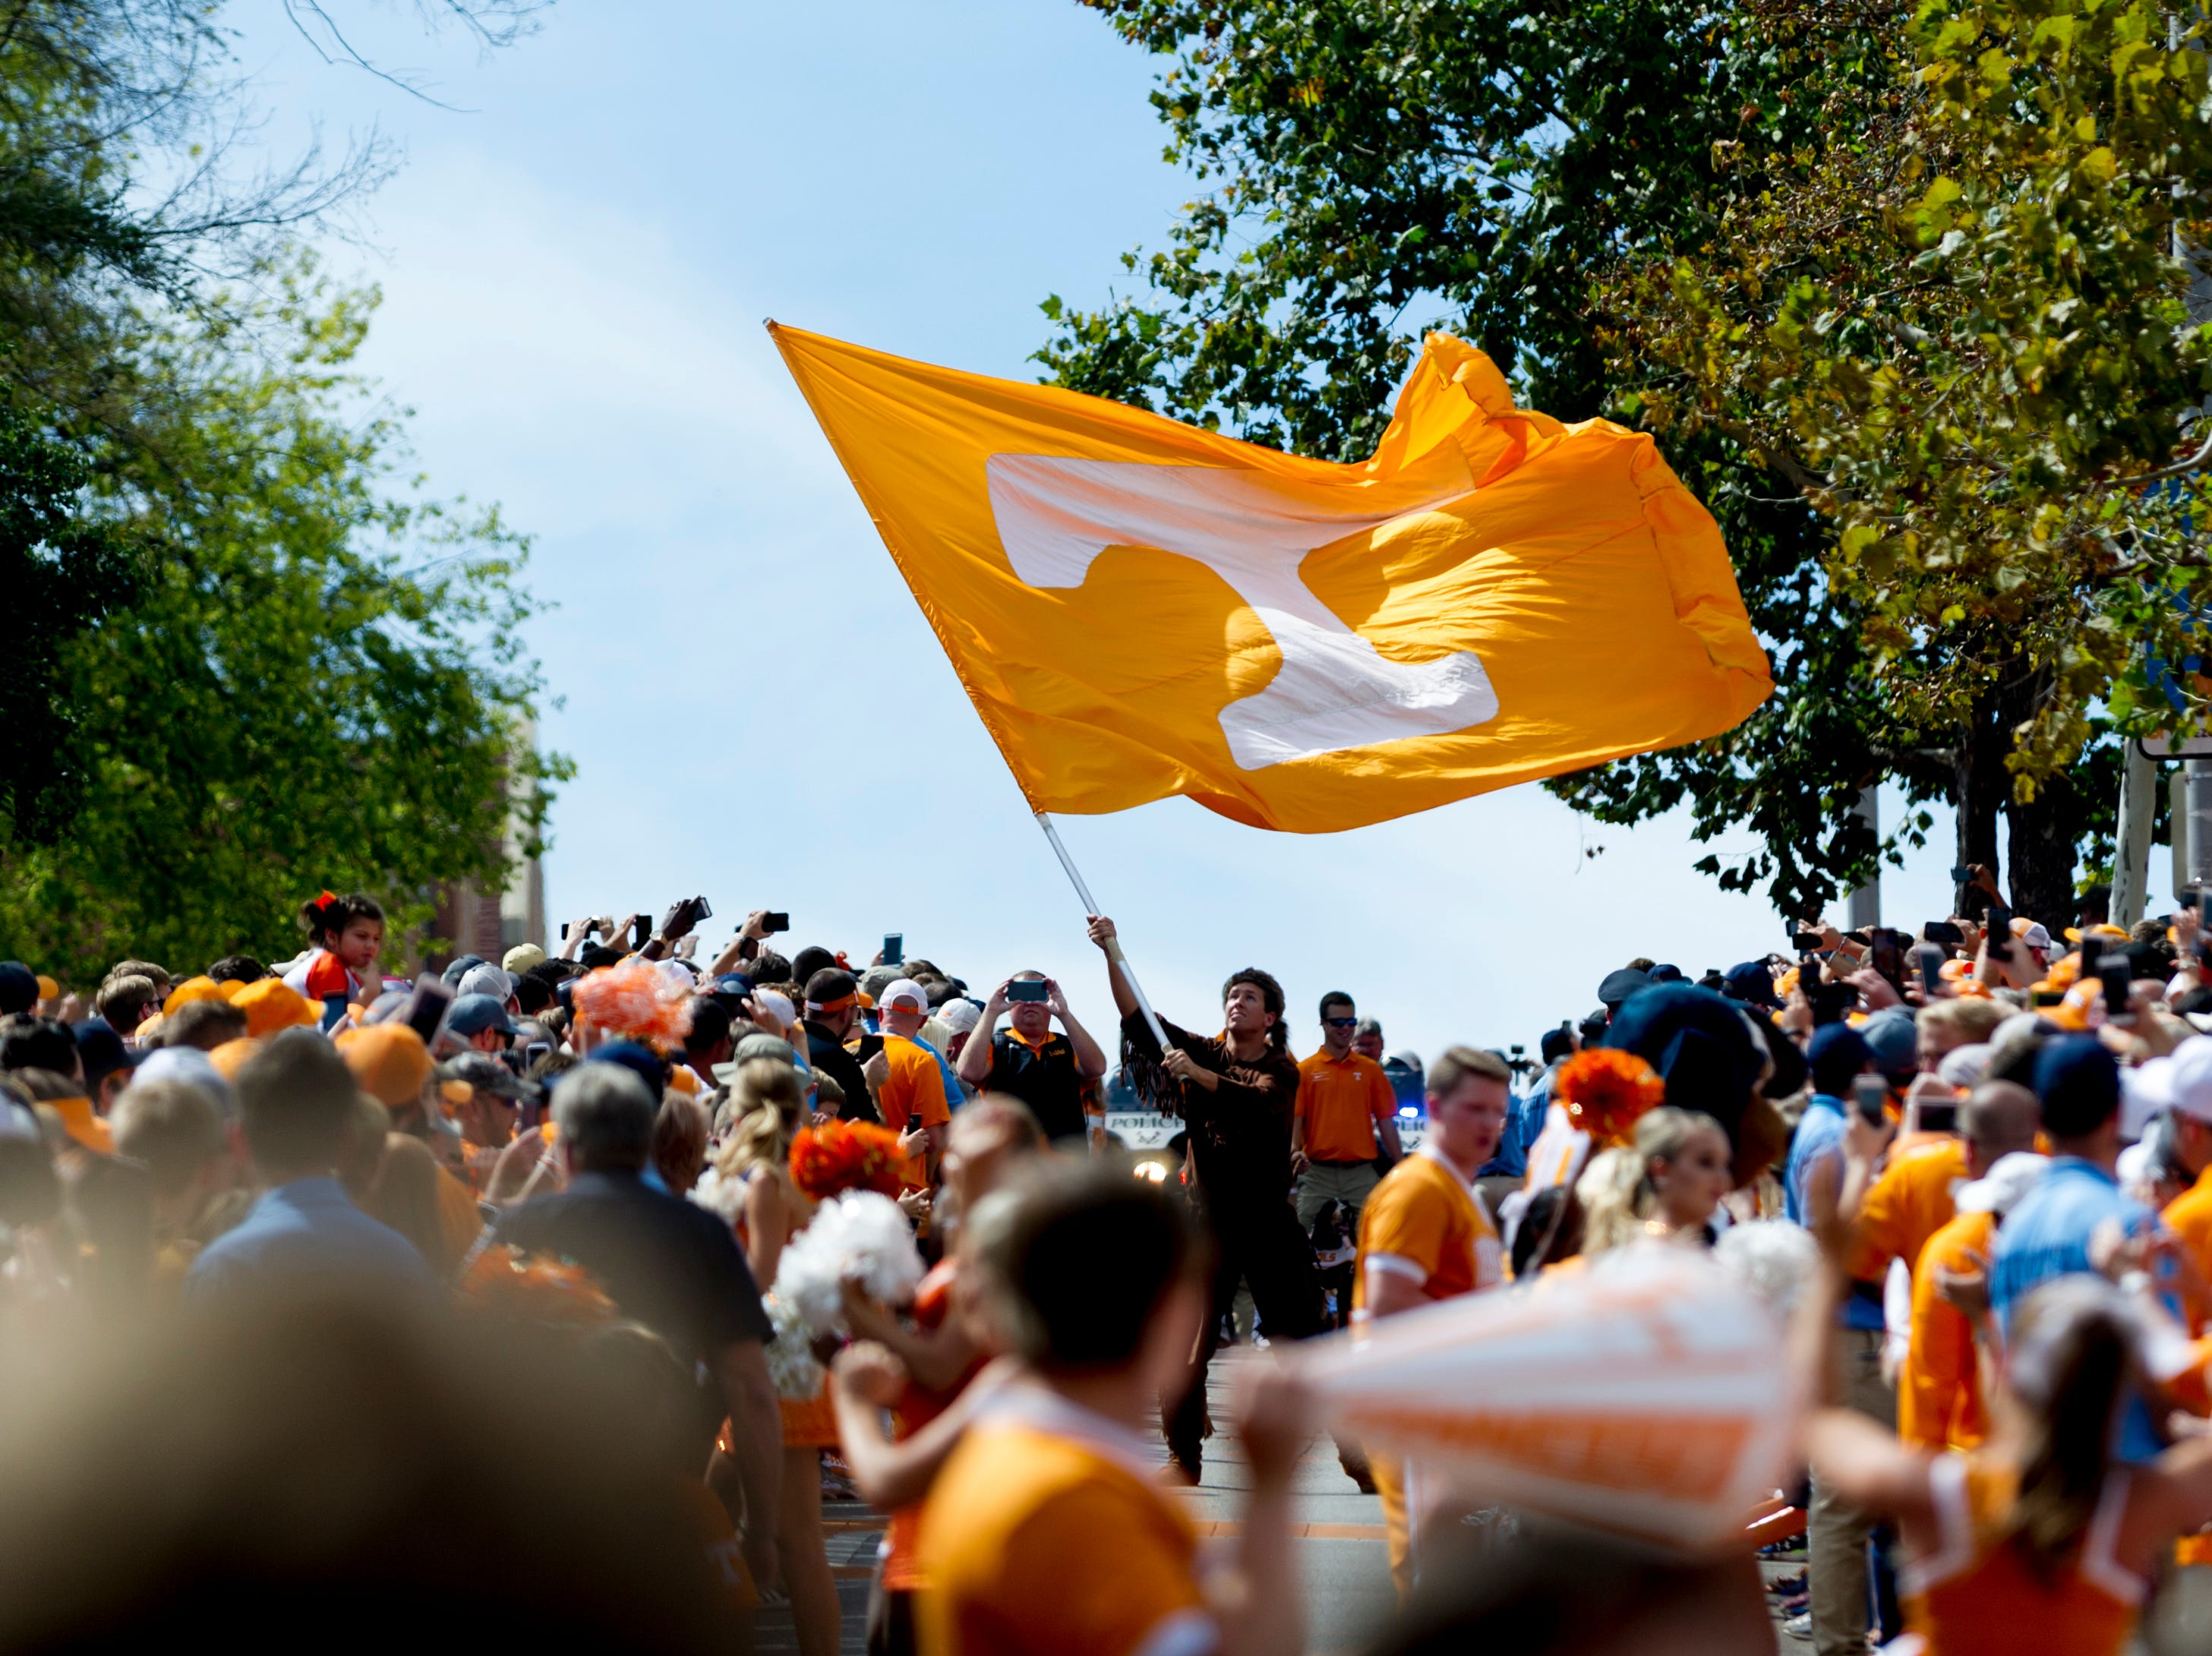 The Tennessee flag is flown during the Vol Walk during the Tennessee Volunteers vs. Georgia Bulldogs game at Neyland Stadium in Knoxville, Tennessee on Saturday, September 30, 2017.